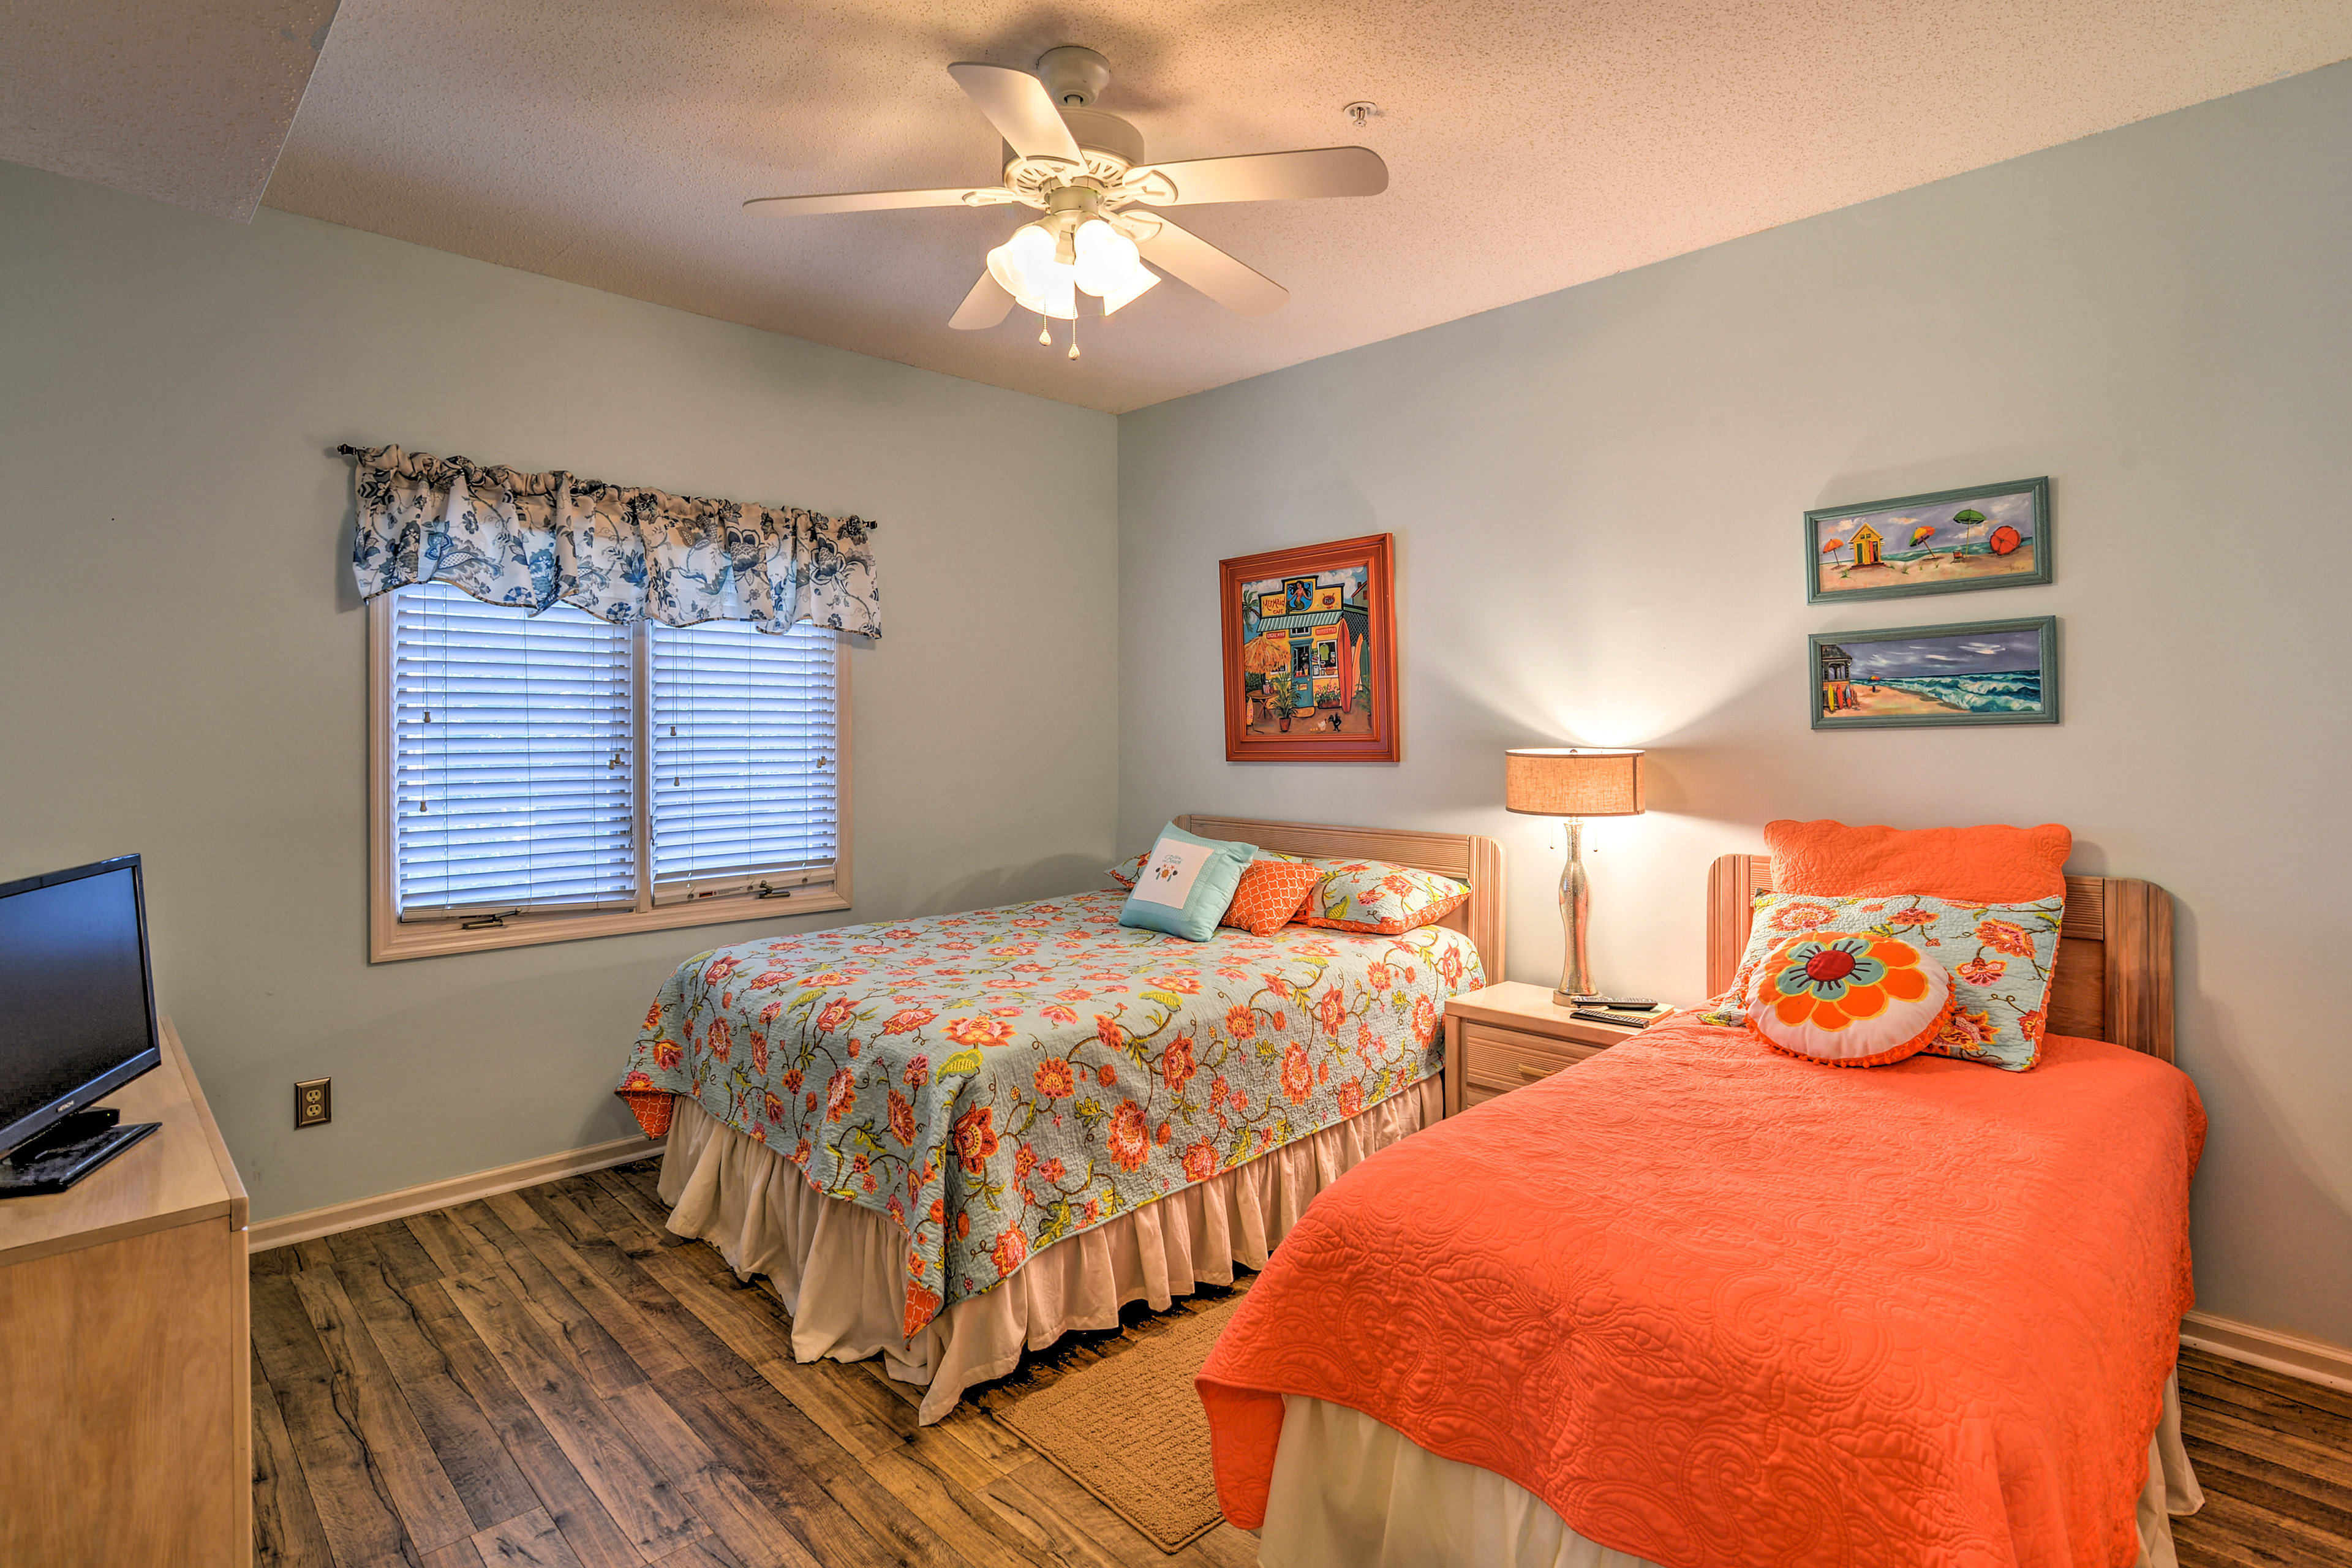 Bedroom 2 boasts a queen and twin bed.